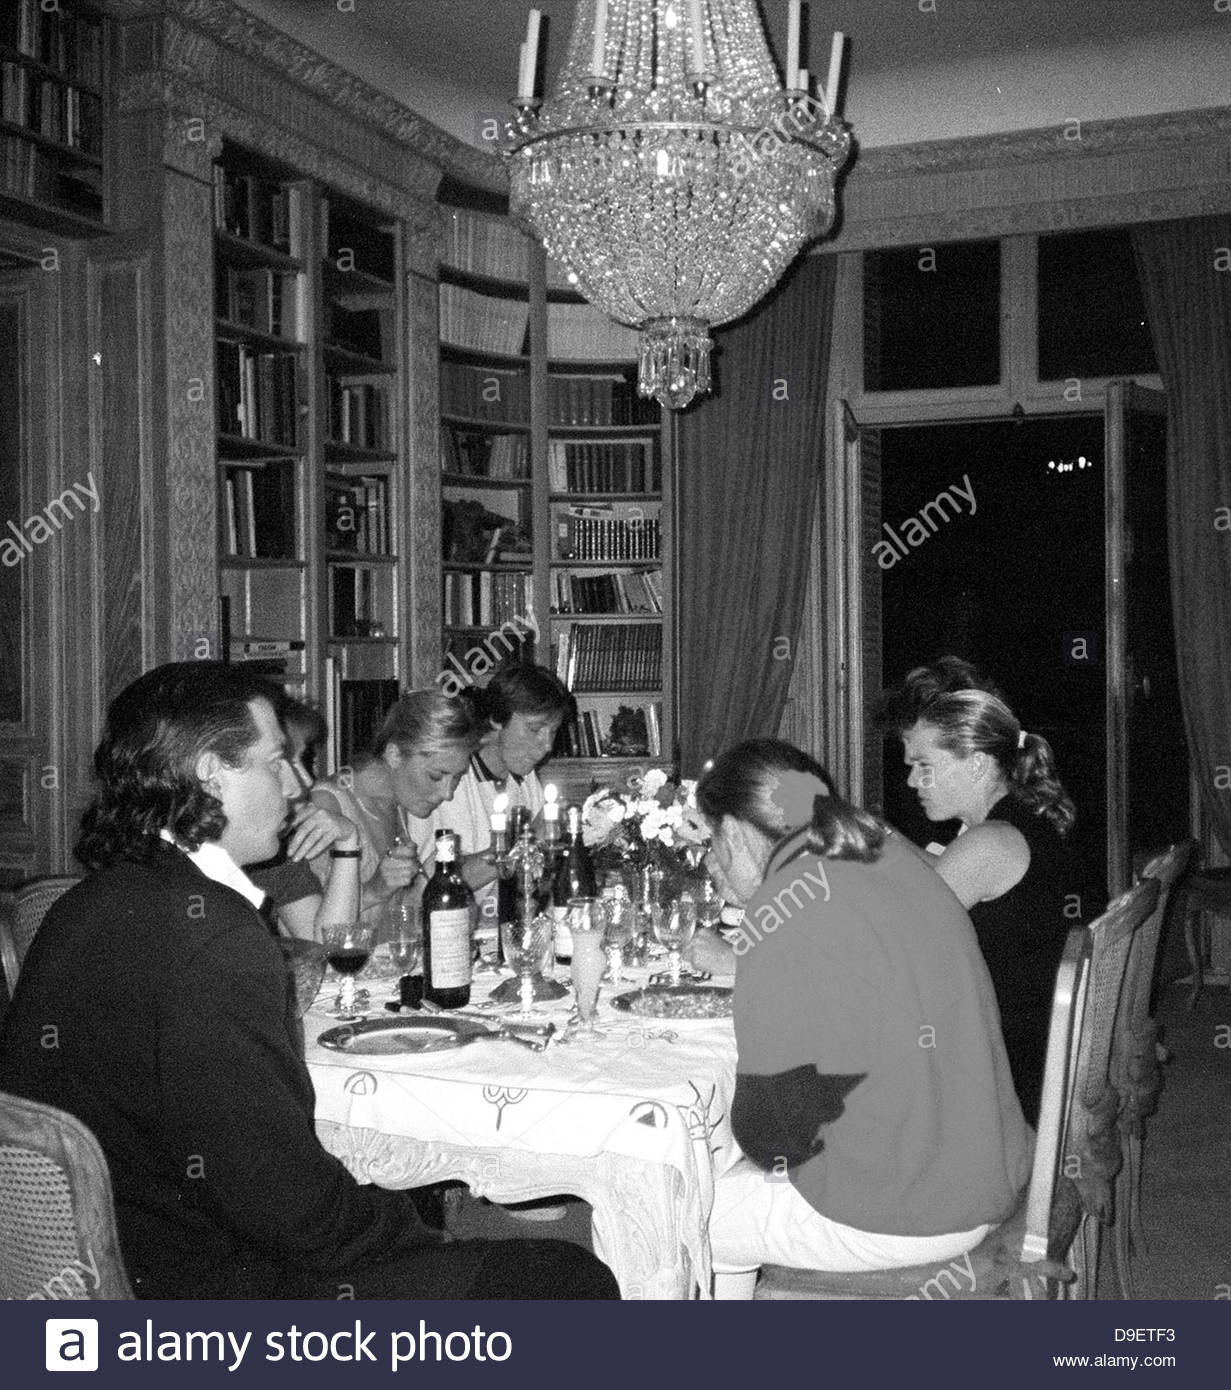 black and white chandelier dinner drinks eating eats family formal glasses hunger hungry indoors inside luxurious - Stock Image